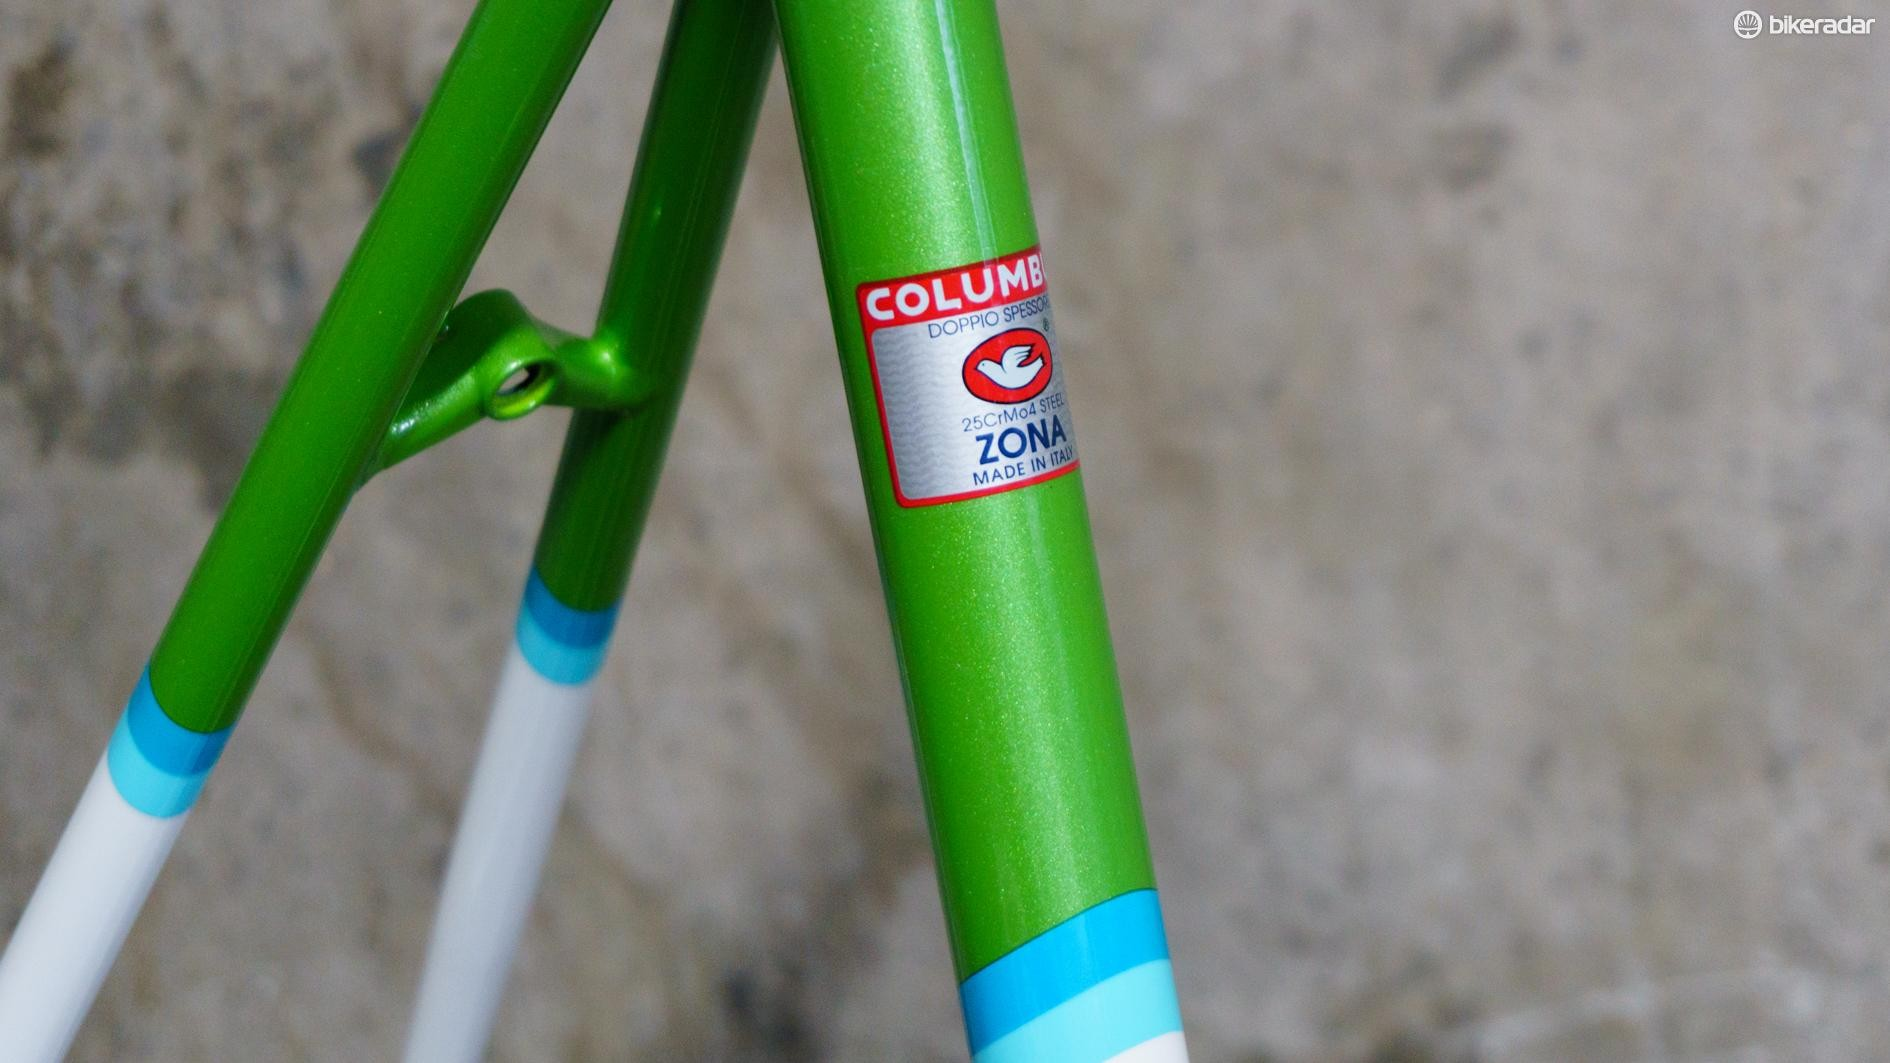 The bike is built with Columbus Zona tubing